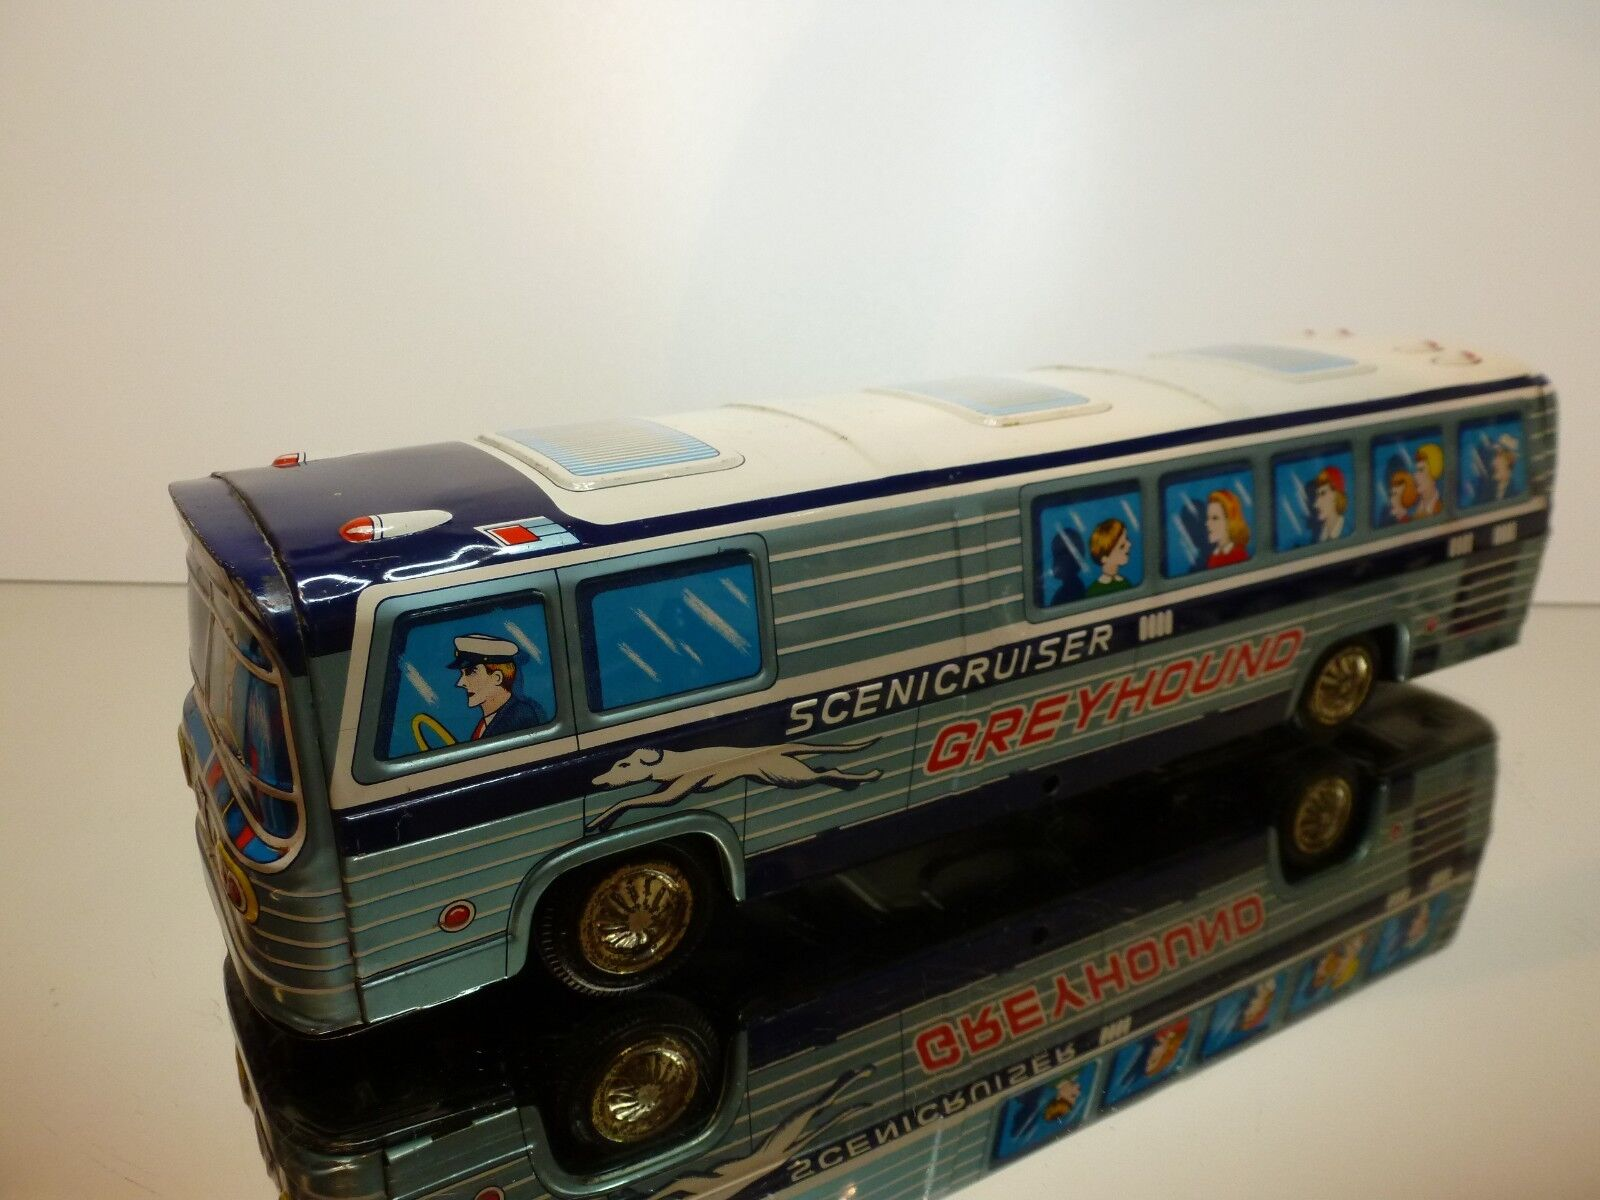 JAPAN 49 TIN TOYS BUS GM GREYHOUND SCENICRUISER - FRICTION - L33.5cm - GOOD